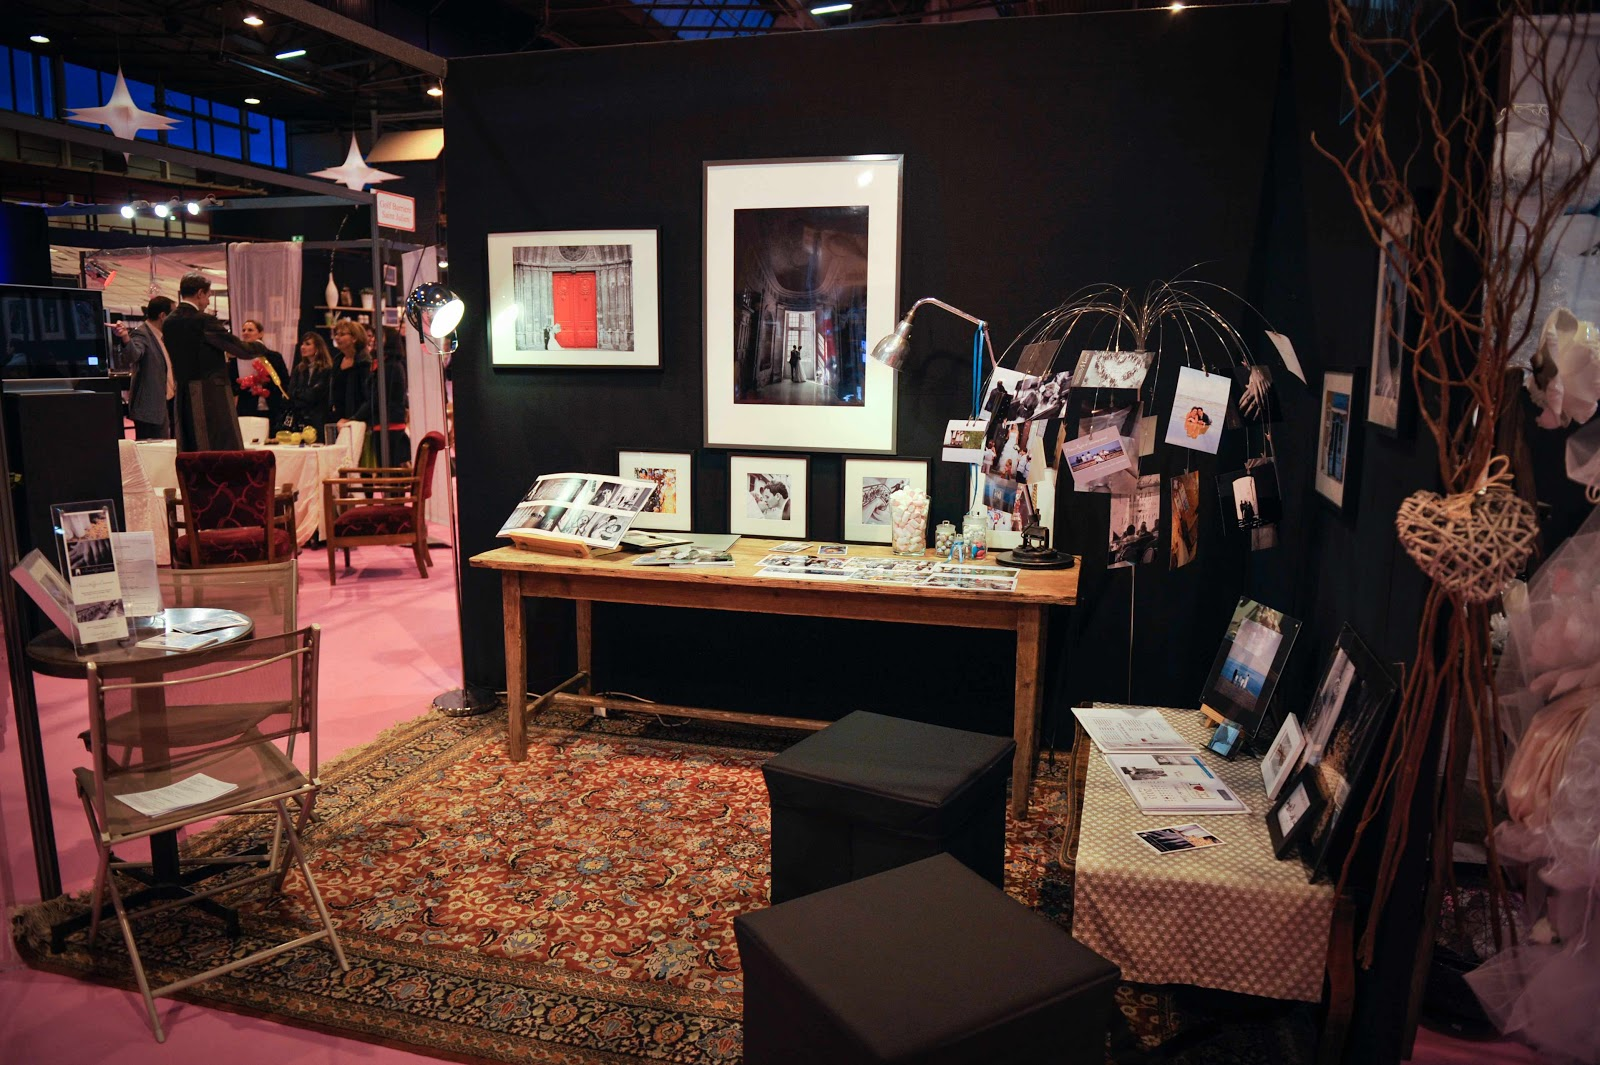 premieregard photographie salon du mariage de caen 2012. Black Bedroom Furniture Sets. Home Design Ideas